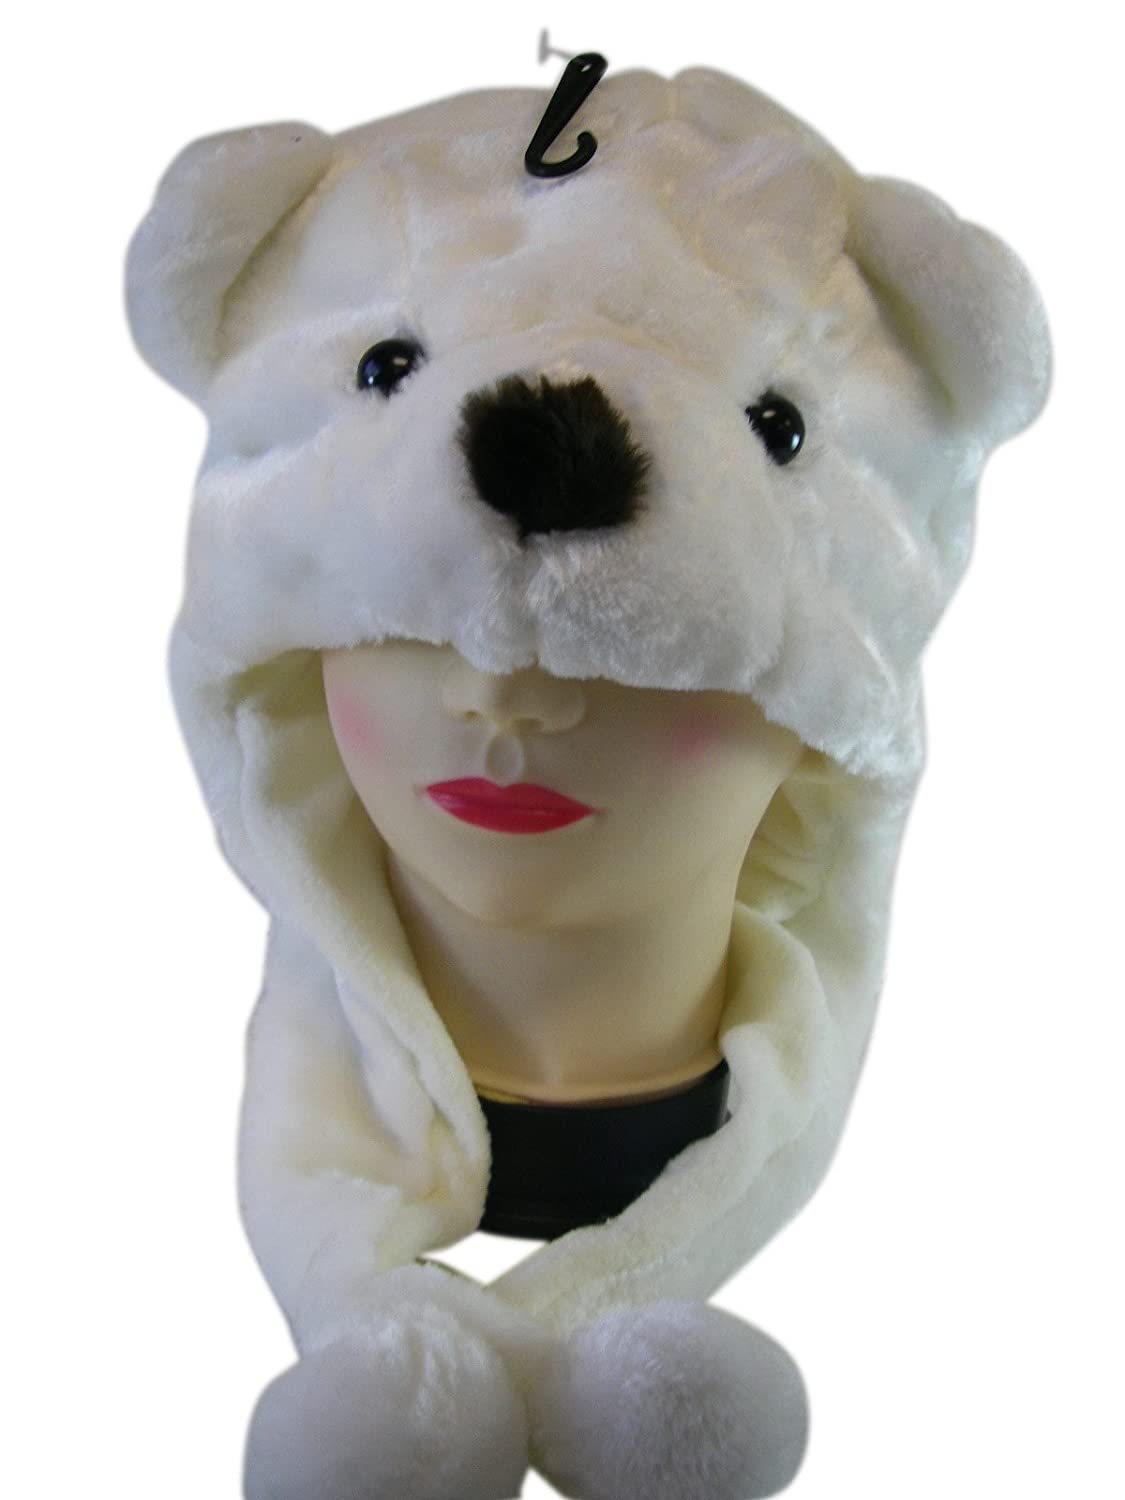 Polar Bear Hat - Winter Wear Plushy Animal Hat (One Size) kewlwool polar-bearhat-bx19b-25-fbu